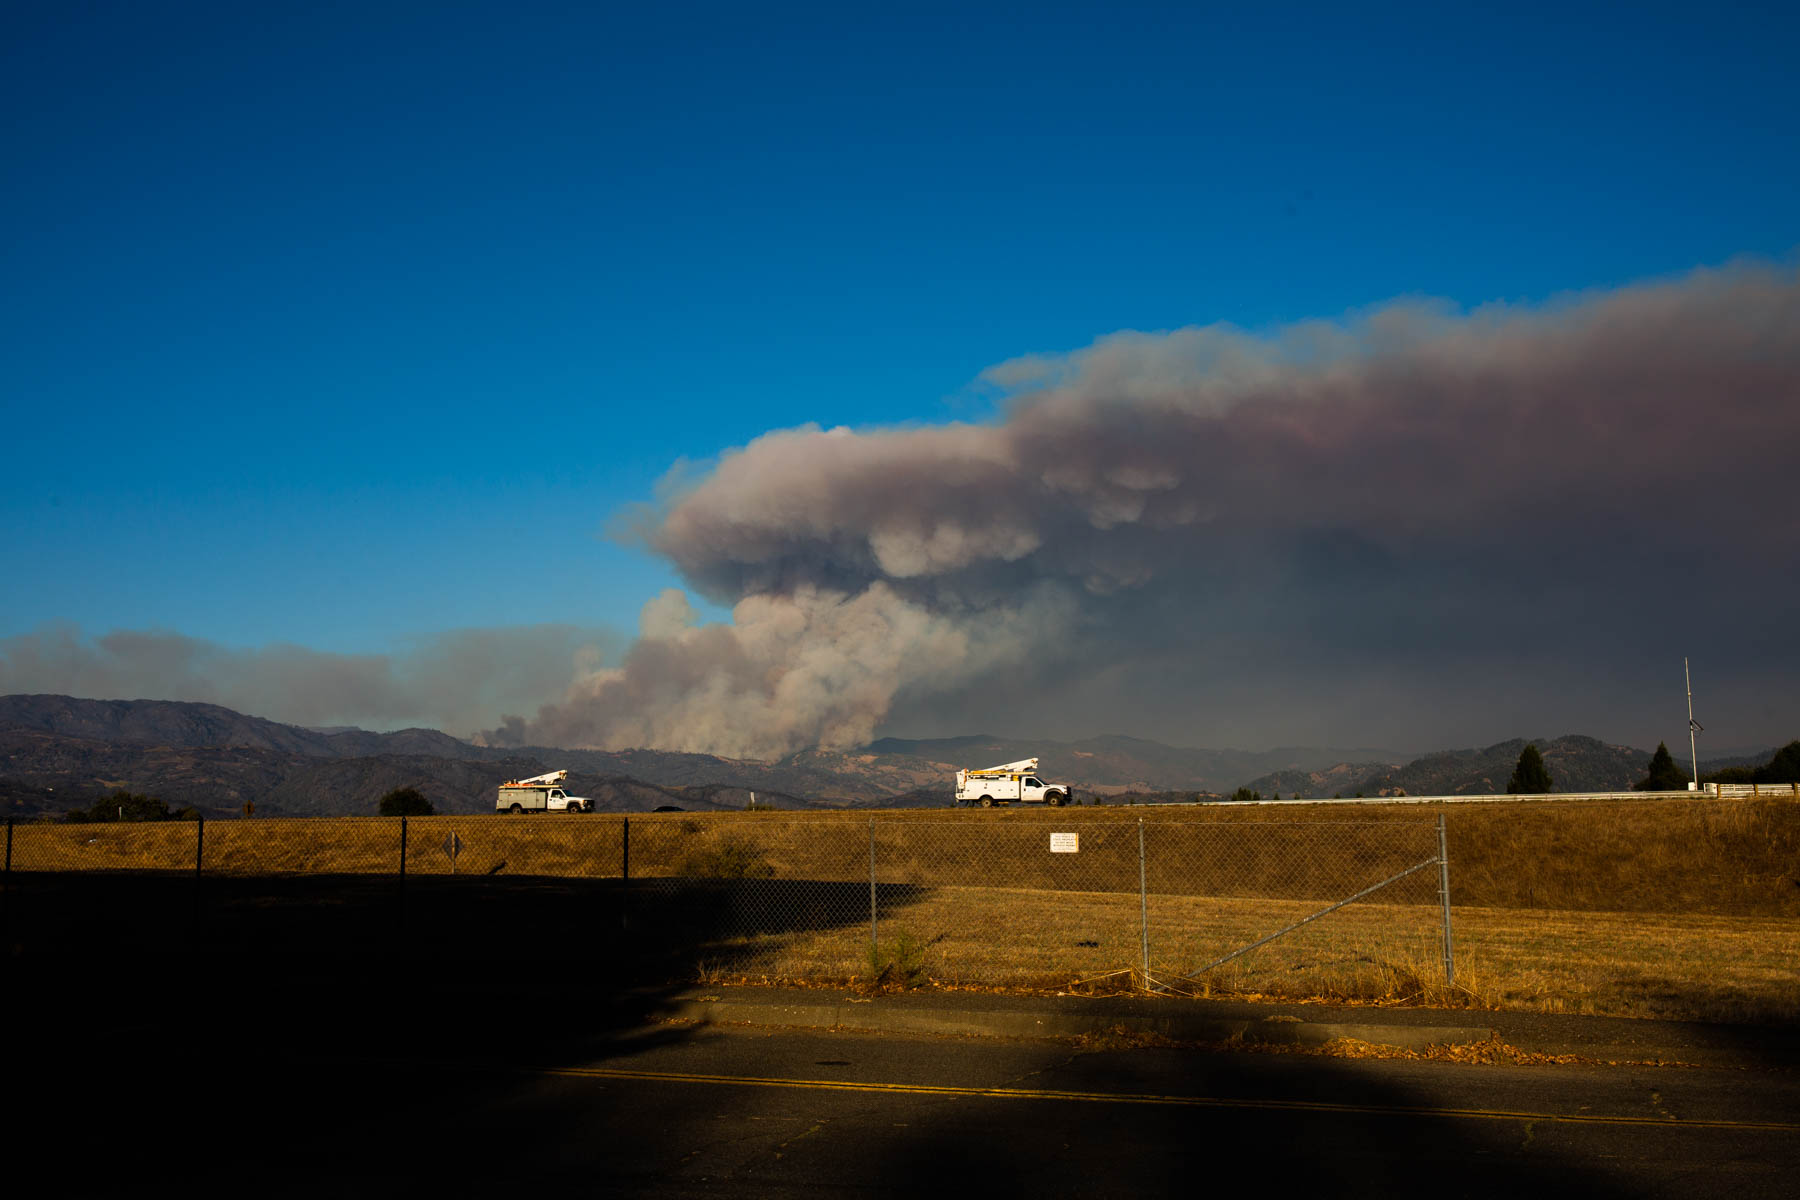 As of Sunday, more than 3,000 firefighters were battling the explosive Kincade Fire, and a broad swath of Sonoma County, from mountain to coast, was under evacuation orders.(Anna Maria Barry-Jester/California Healthline)